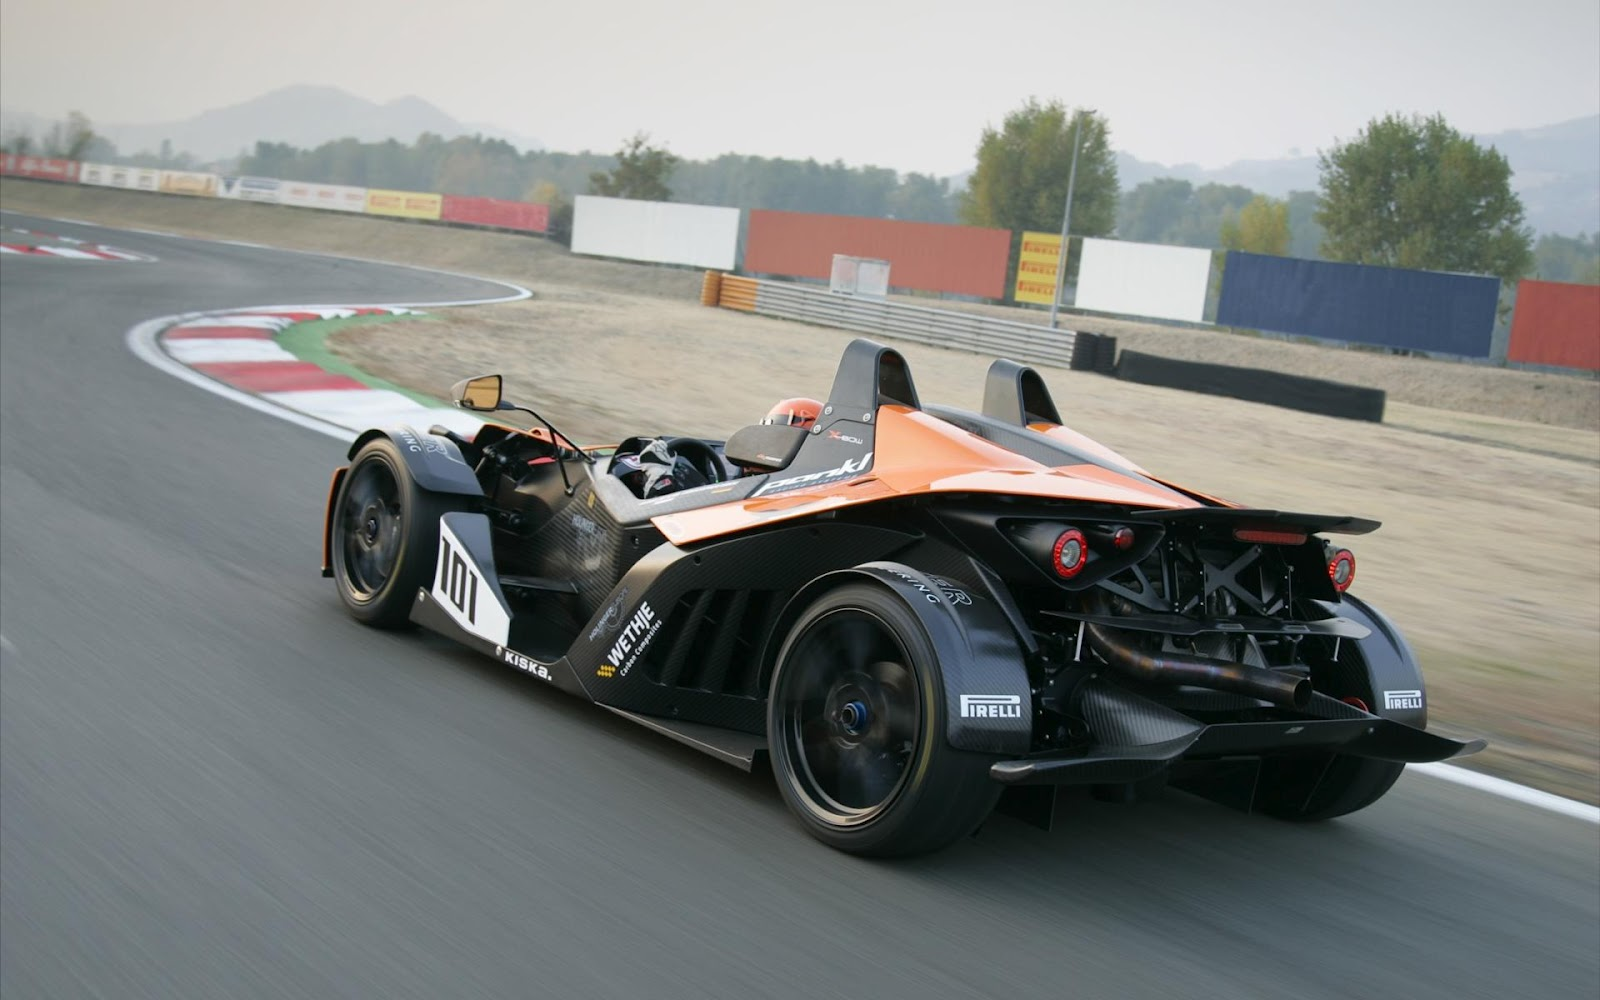 Wallpapers Of Beautiful Cars KTM X Bow Aka Crossbow